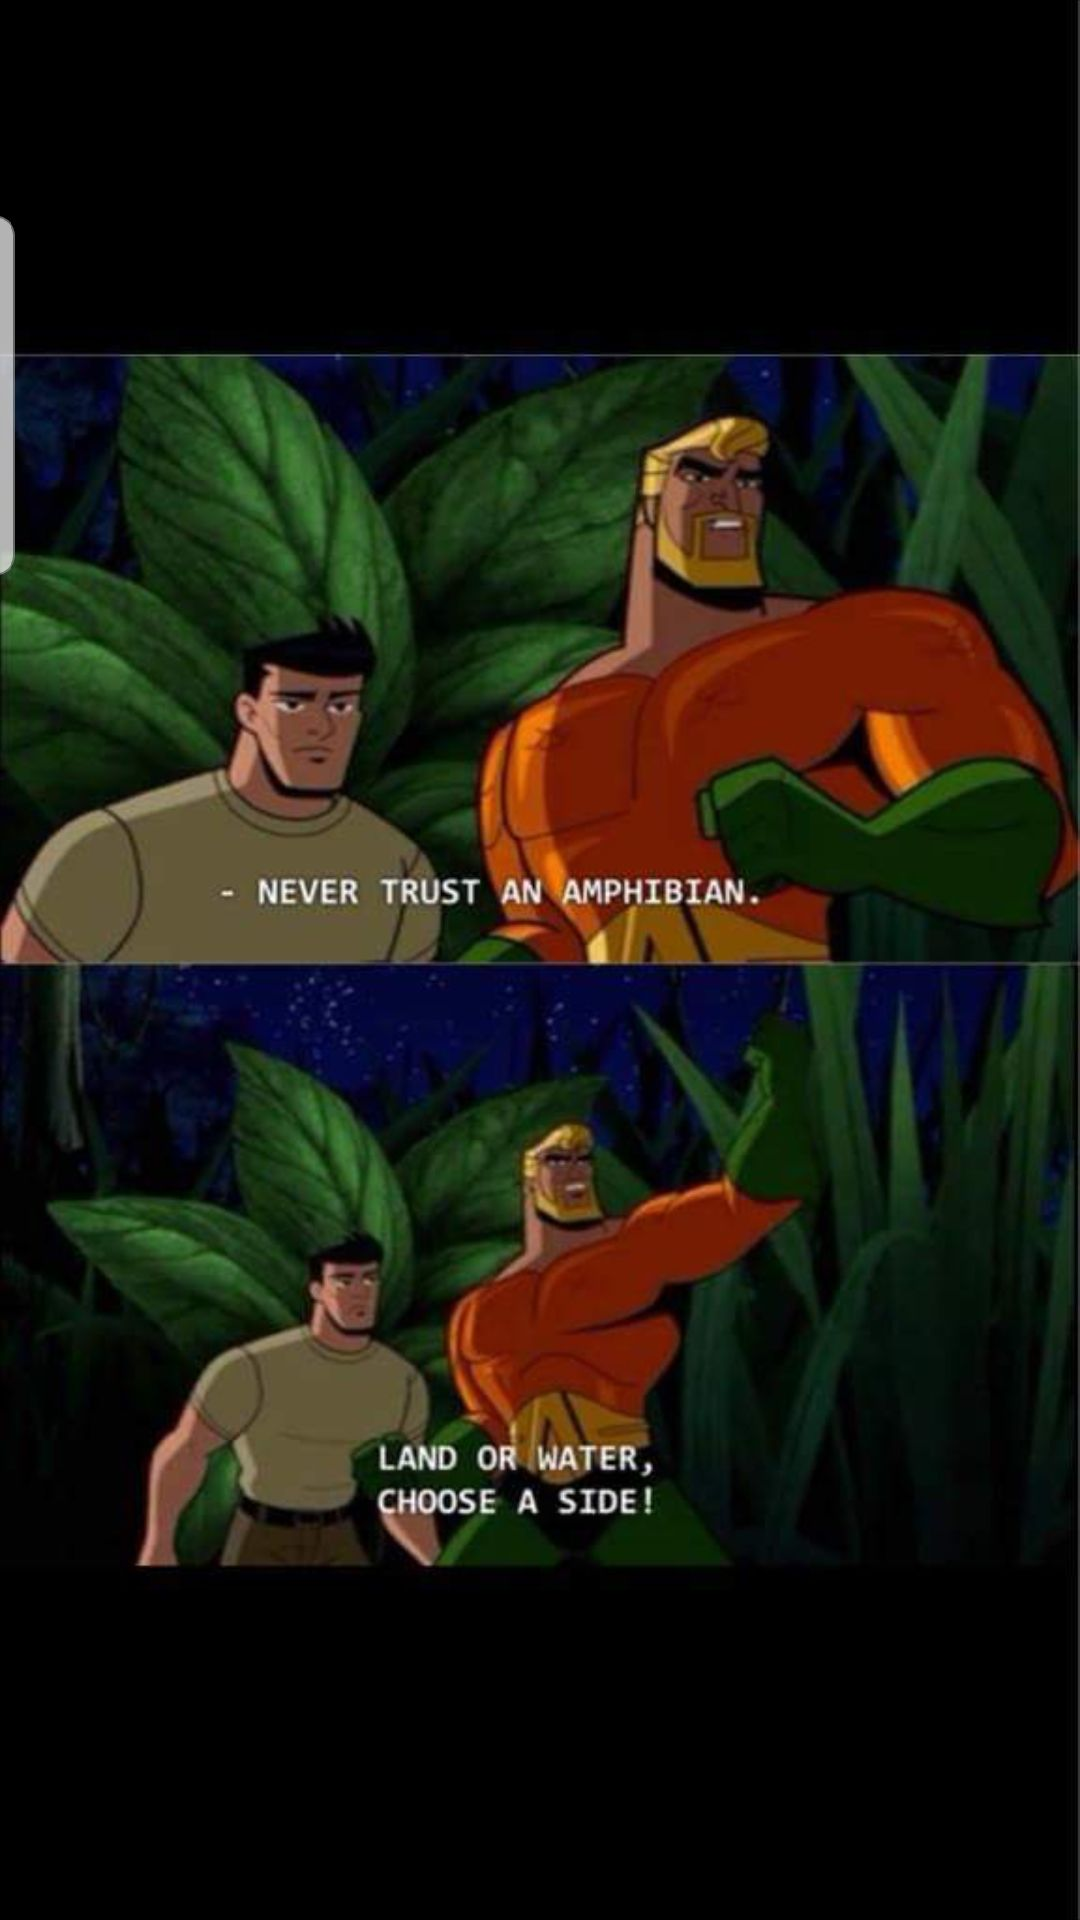 Aquaman doesn't trust frogs Aquaman, Funny pictures